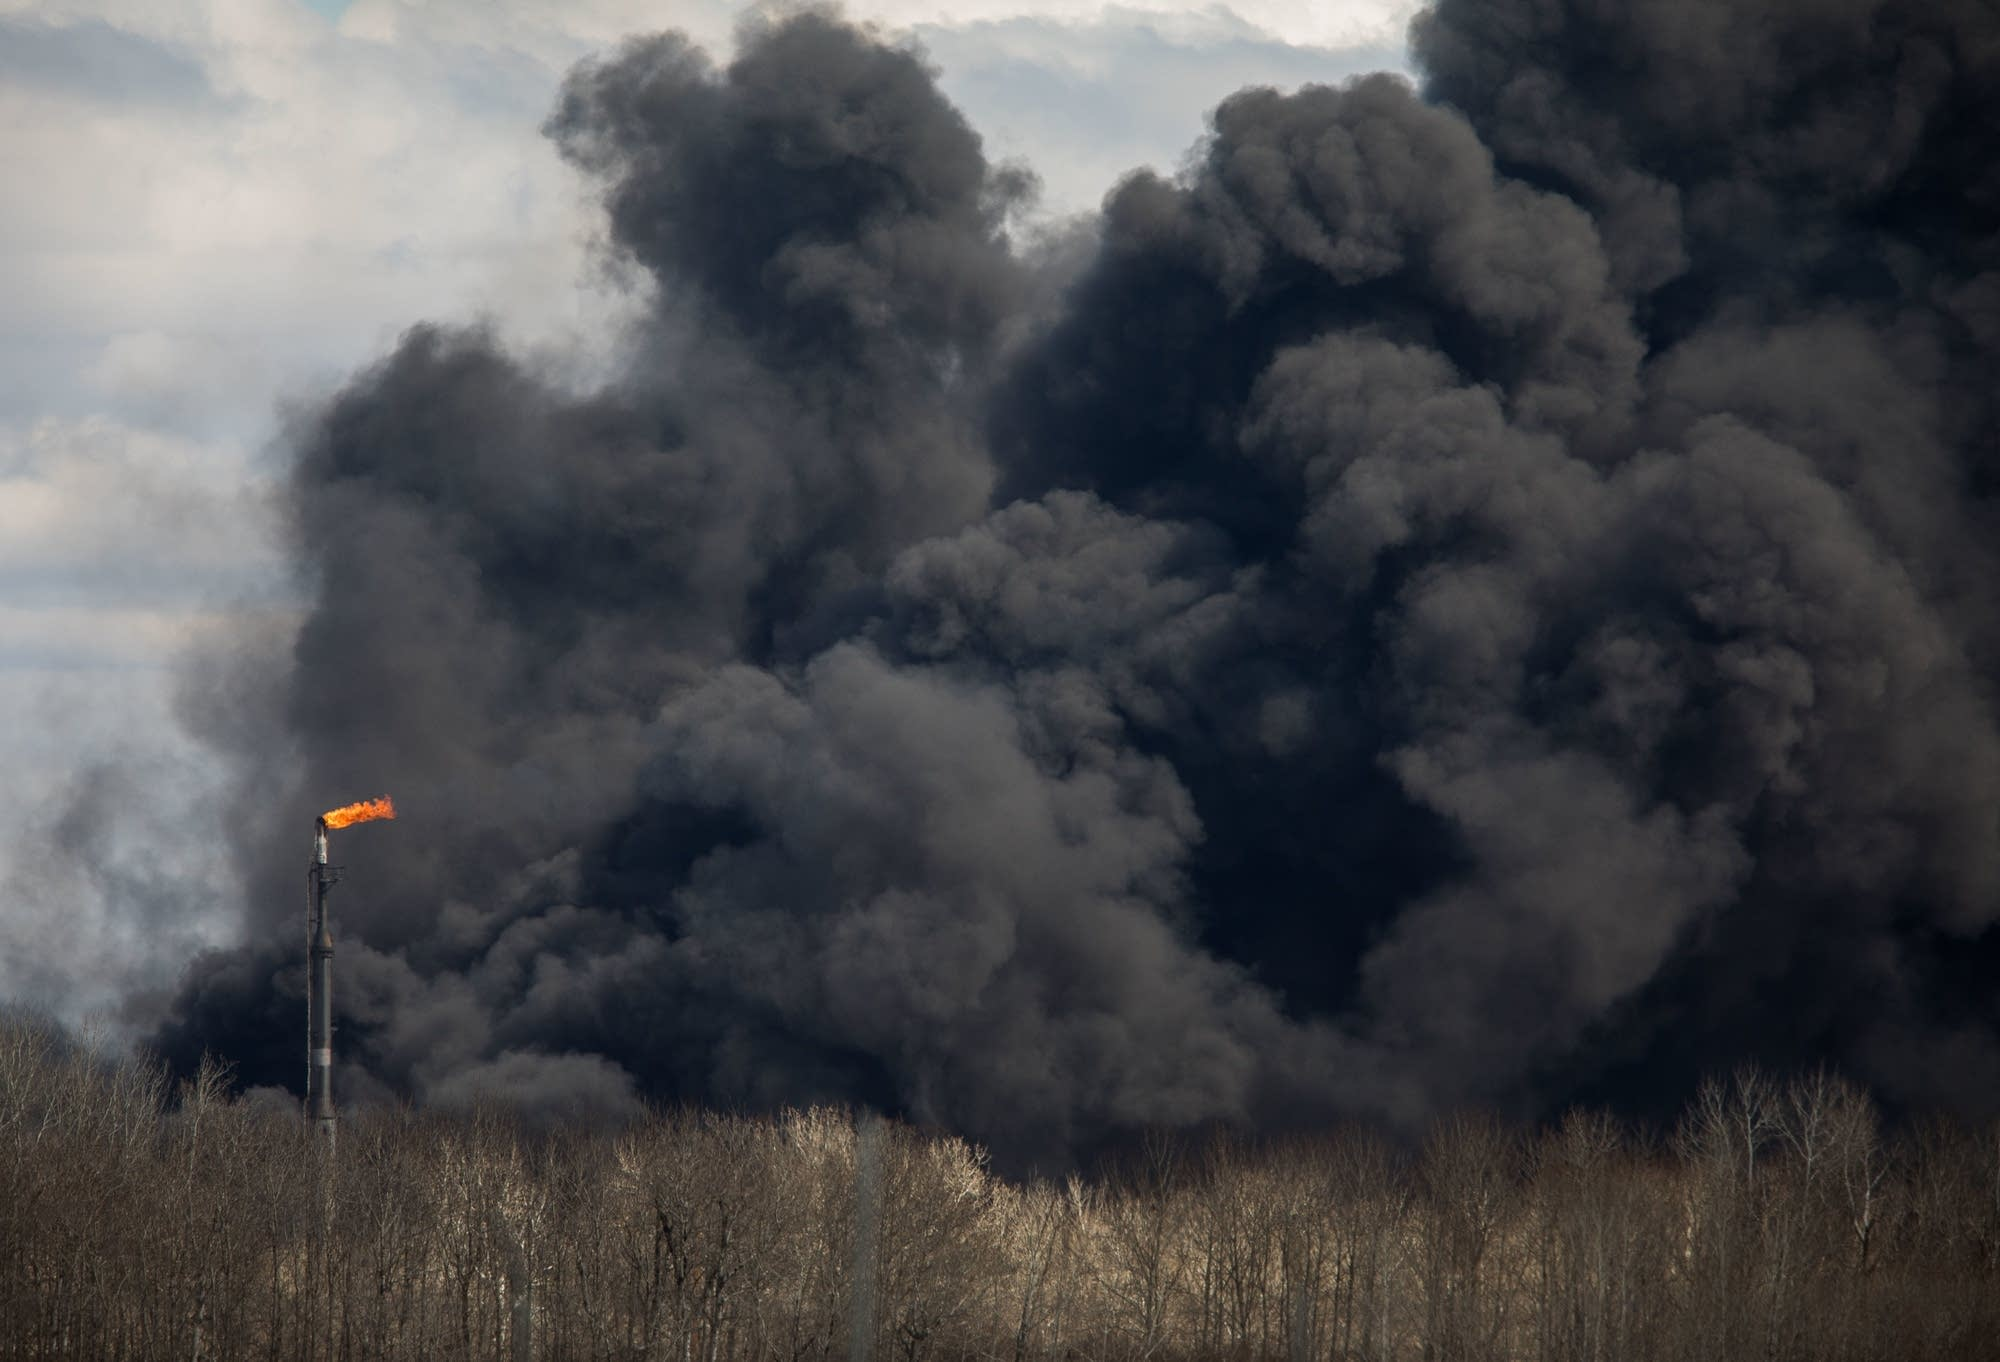 Air quality stable, monitoring continues following Wisconsin refinery fire